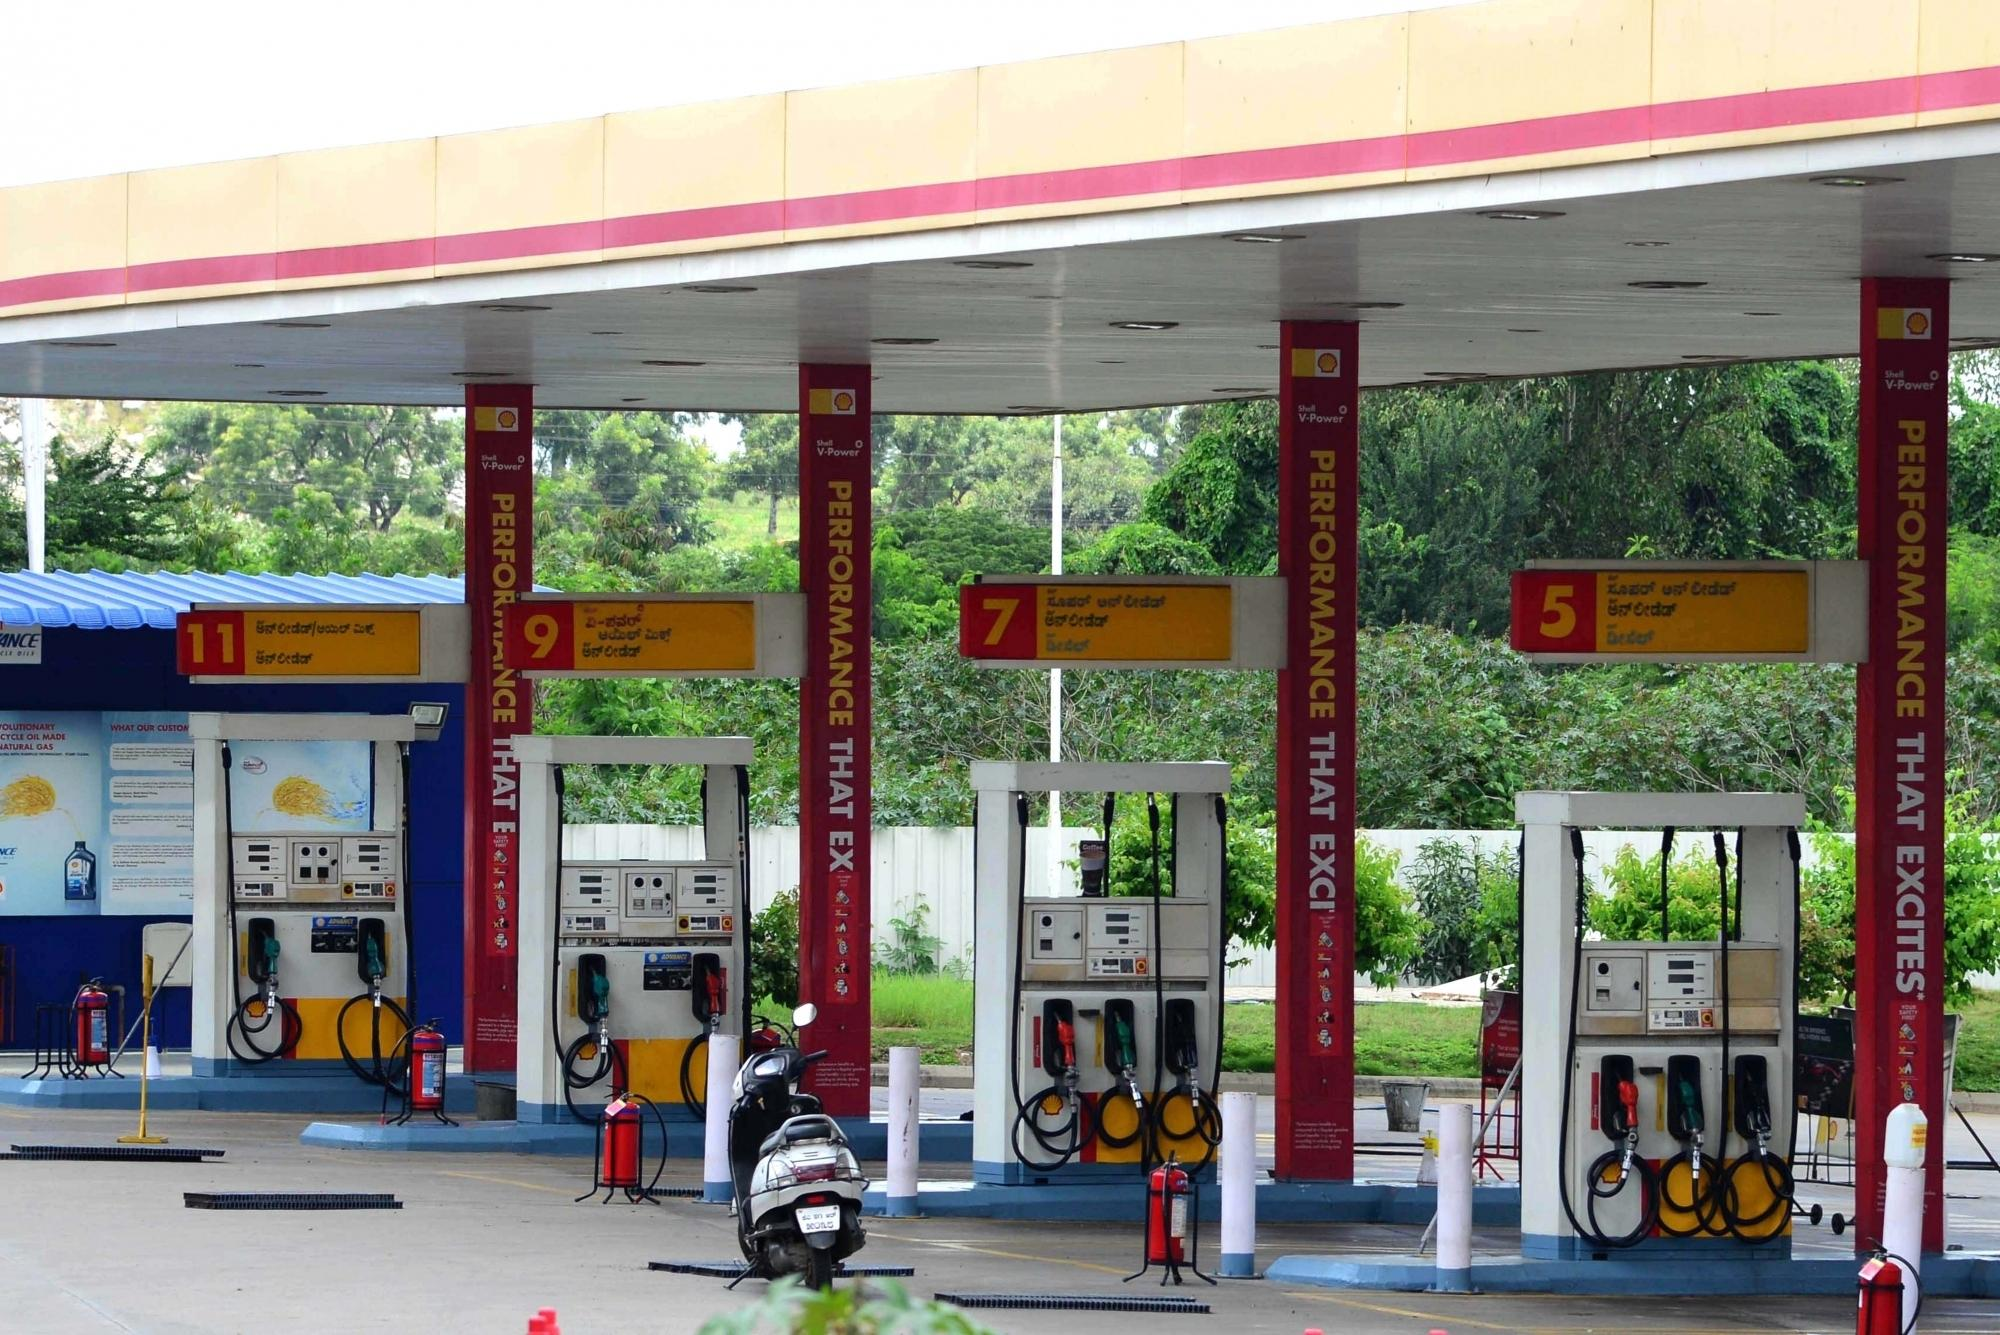 Petrol, diesel prices may rise again from next week ...